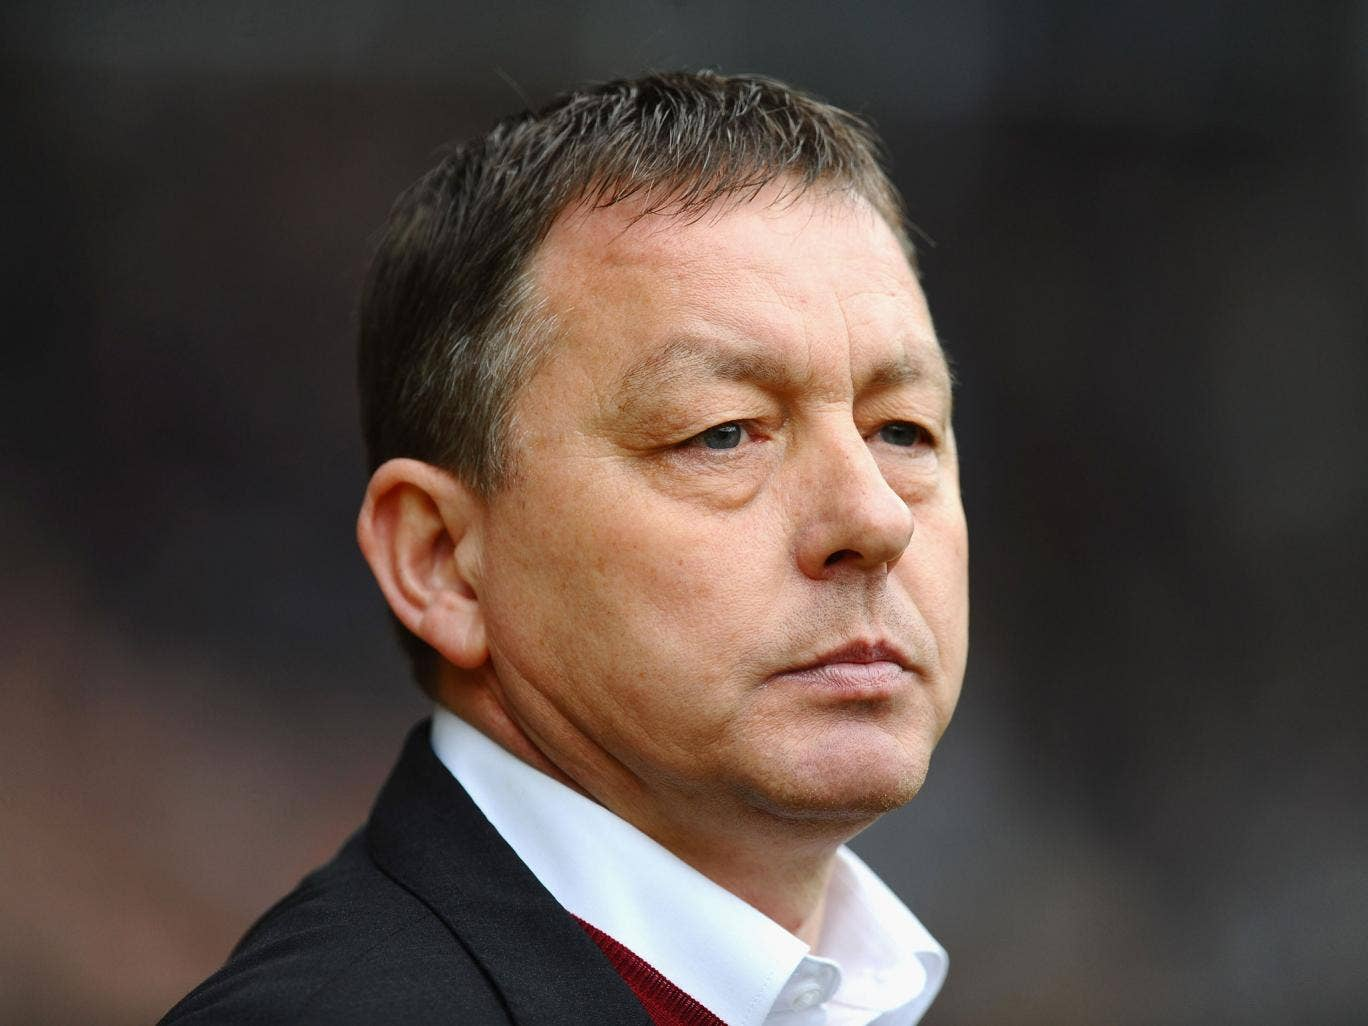 Nottingham Forest are expected to confirm that Billy Davies has been sacked after 13 months at the City Ground